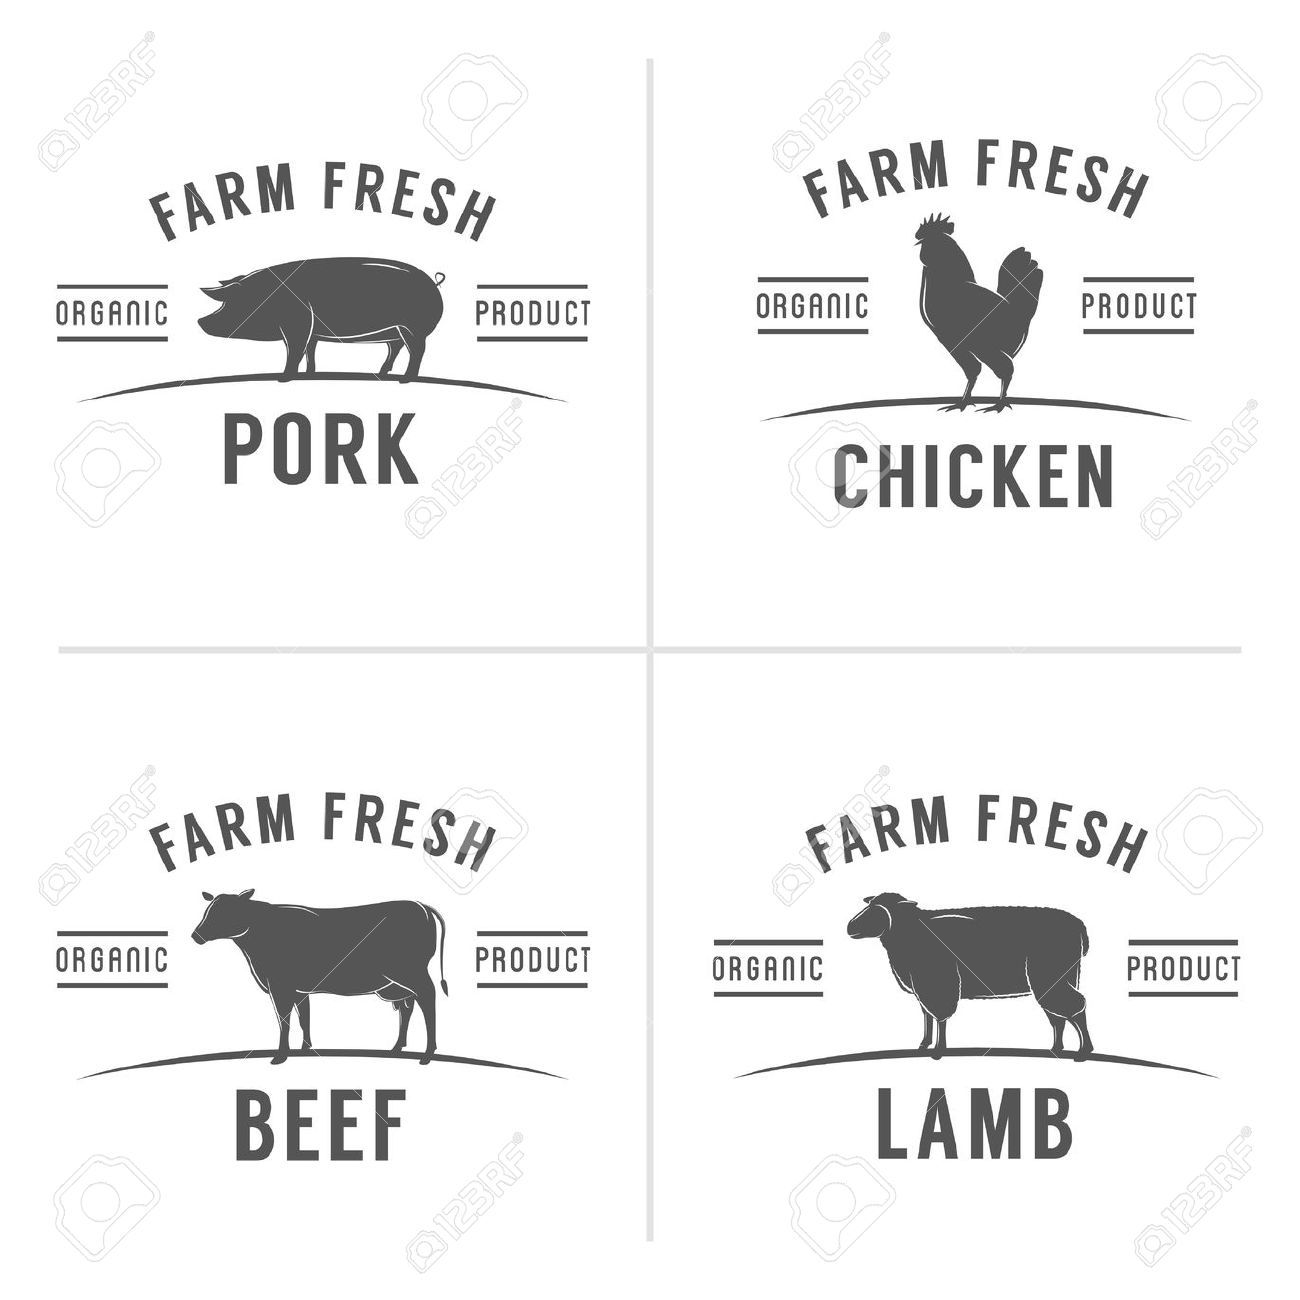 Cow And Pig Clipart